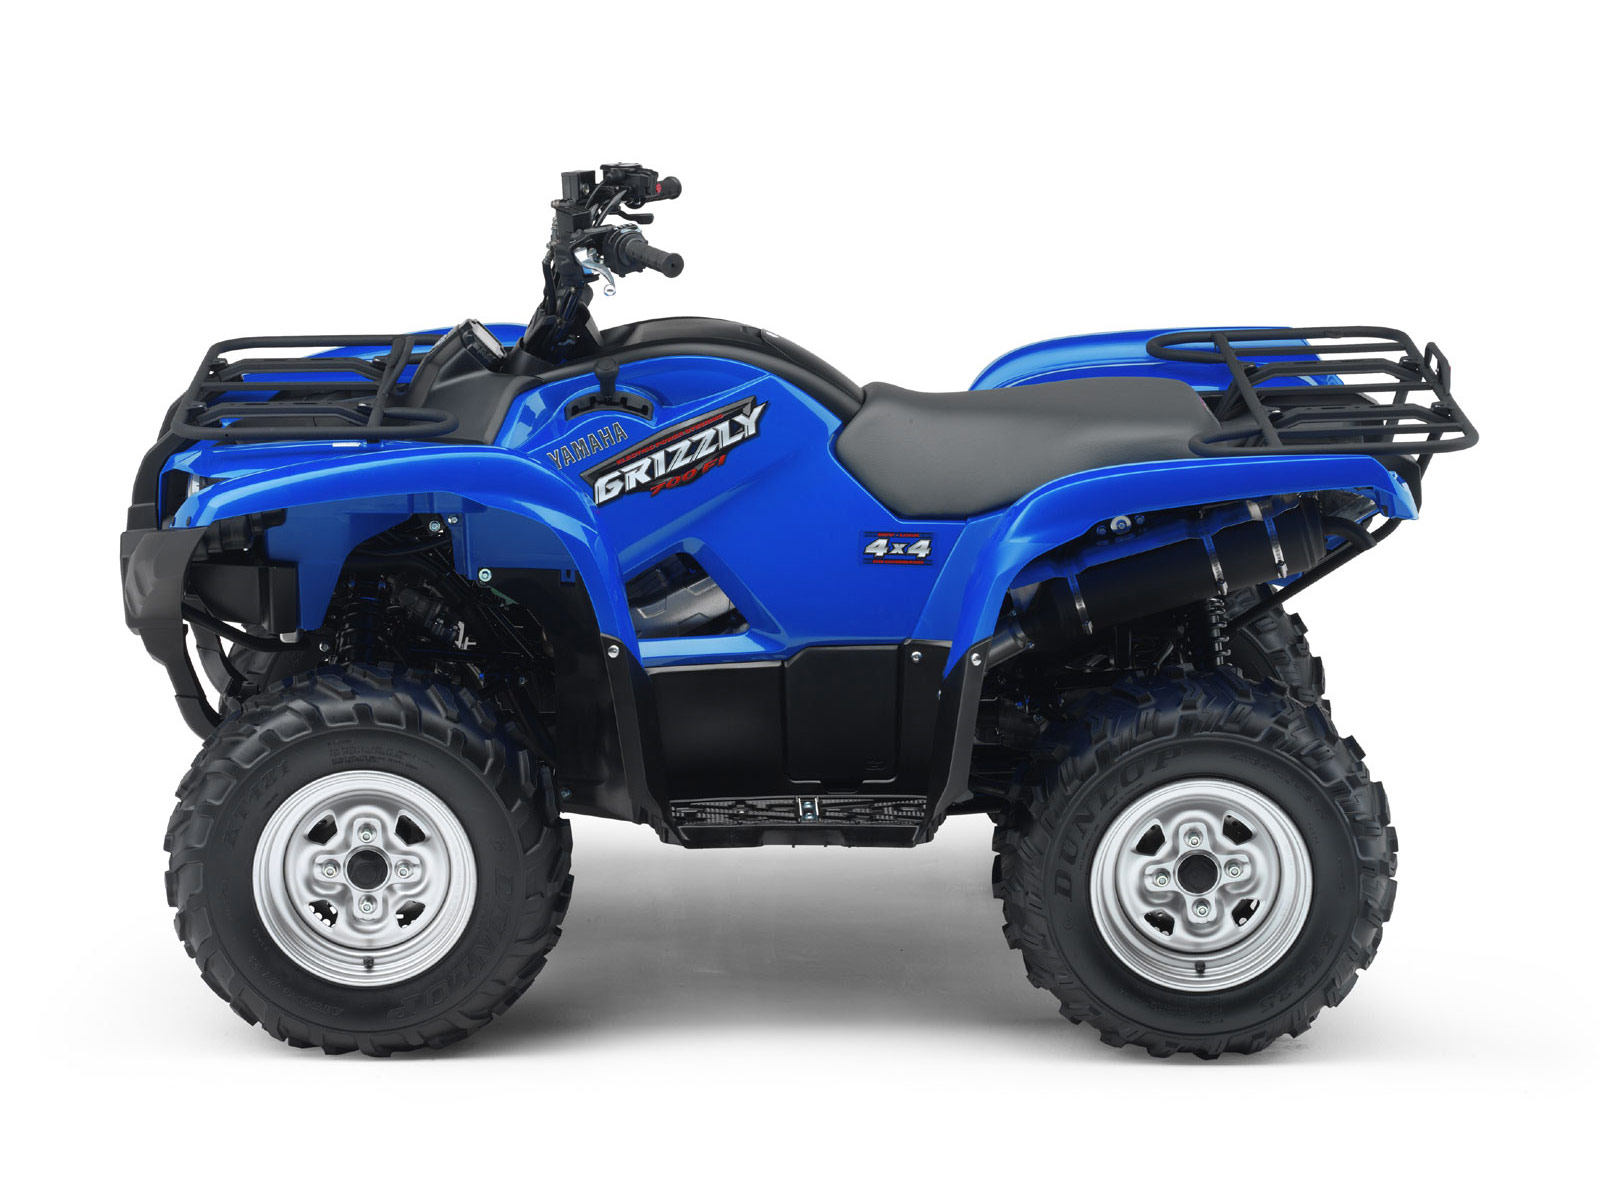 2009 grizzly 700fi yamaha atv pictures specs